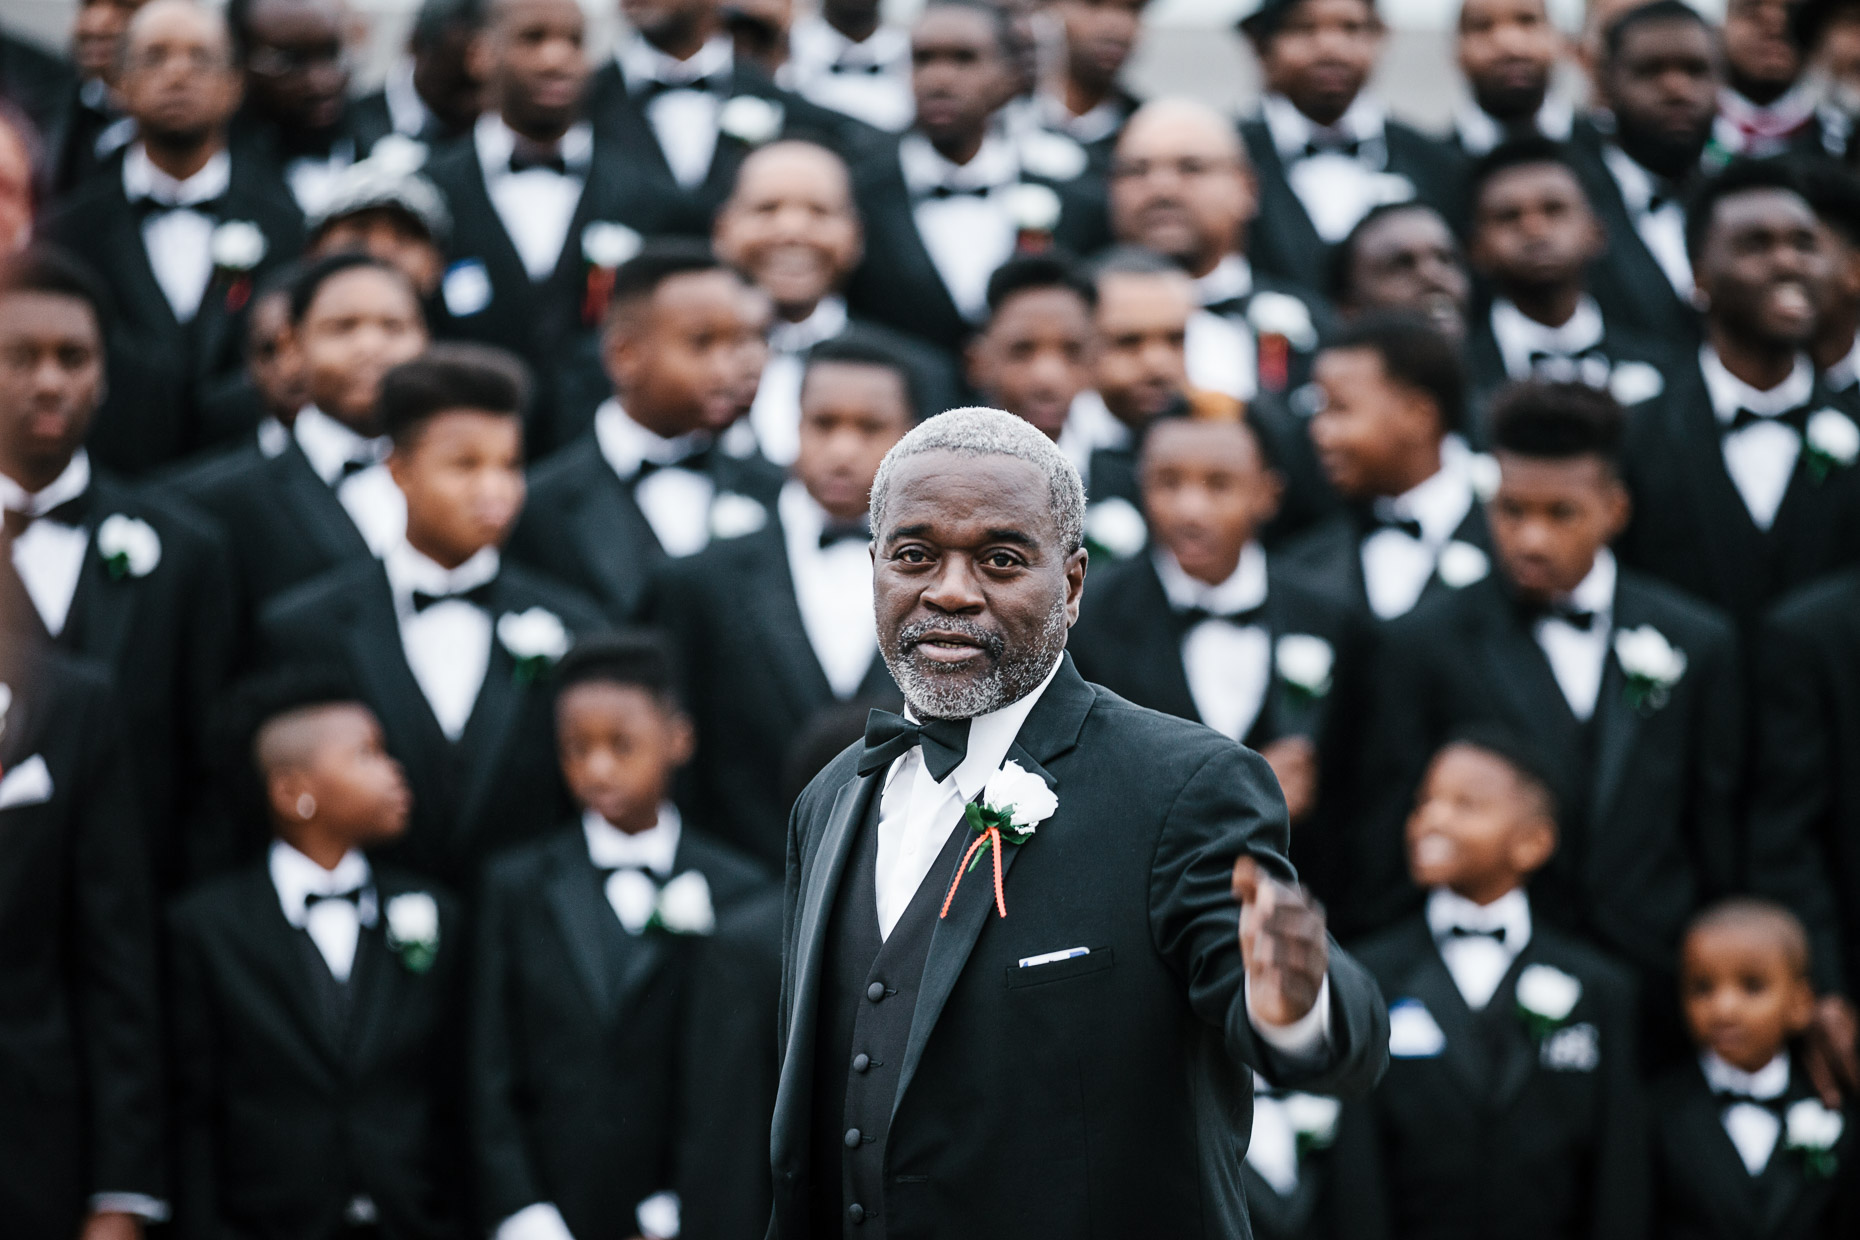 Participants of the 500 Black Tuxedos Event, organized by Andre Lee Ellis, gather for a group photo on the steps of the Milwaukee Art Museum on Saturday December 12th, 2015 in Milwaukee, Wisconsin.